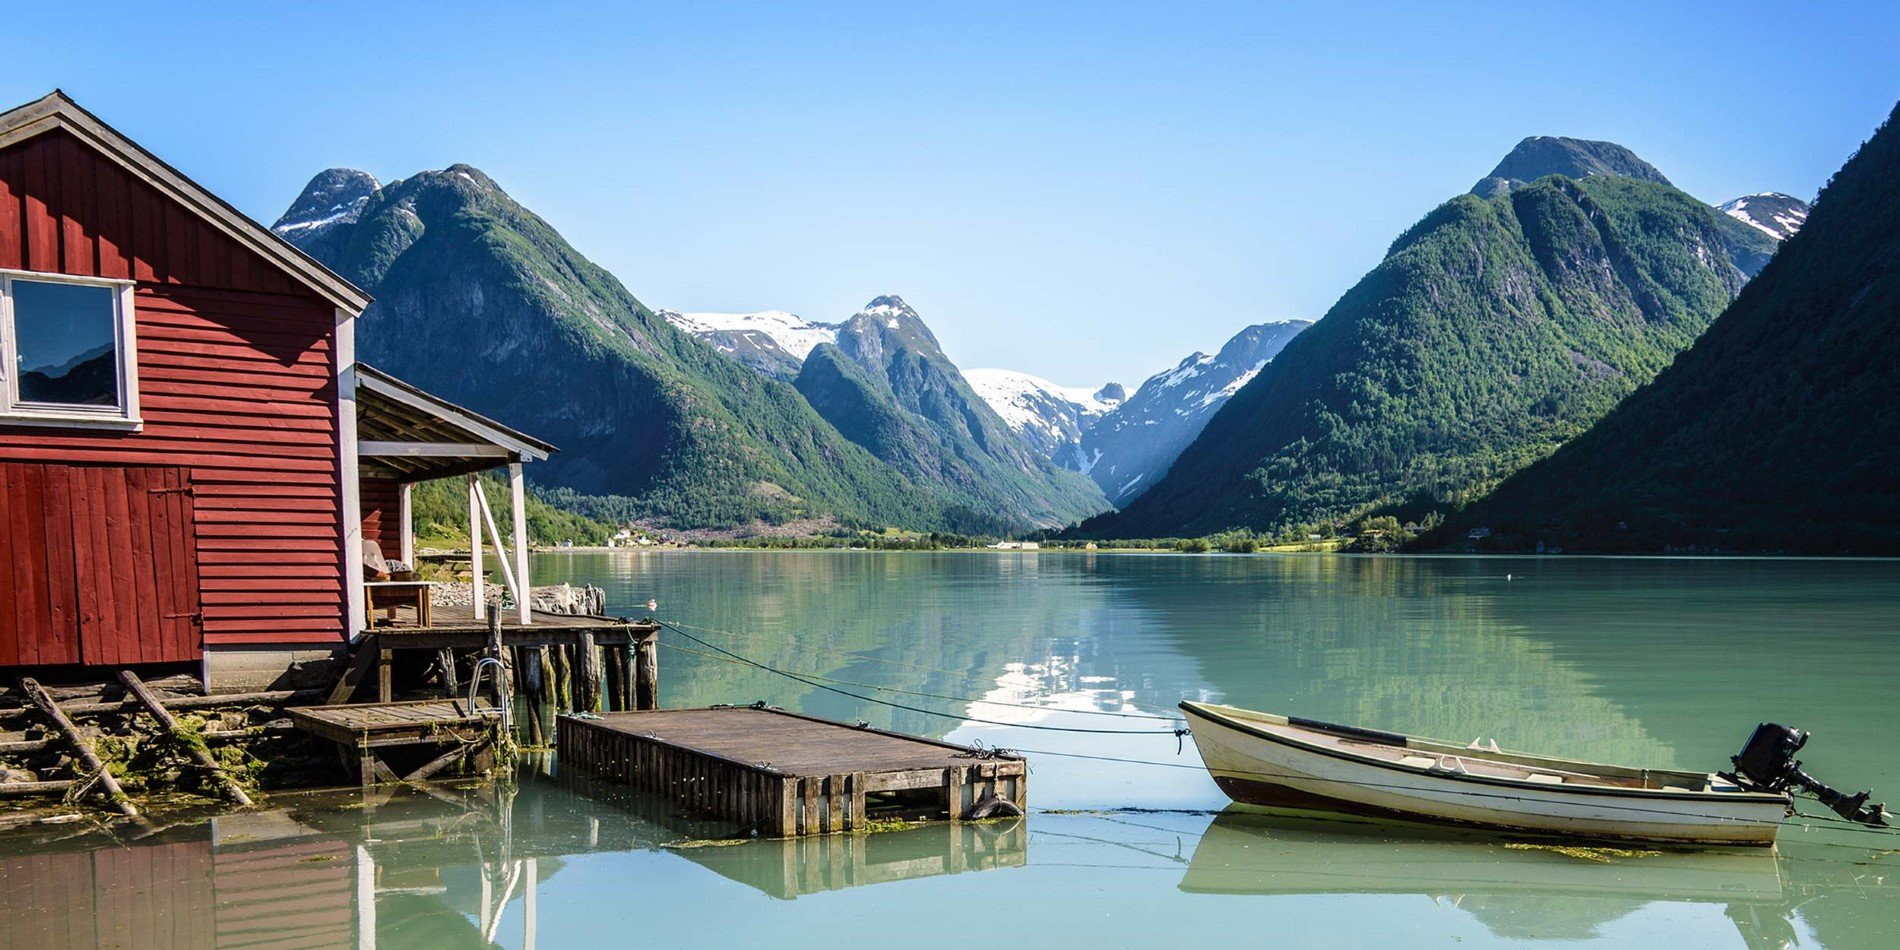 Sognefjord, the spectacular longest and deepest fjord in Norway